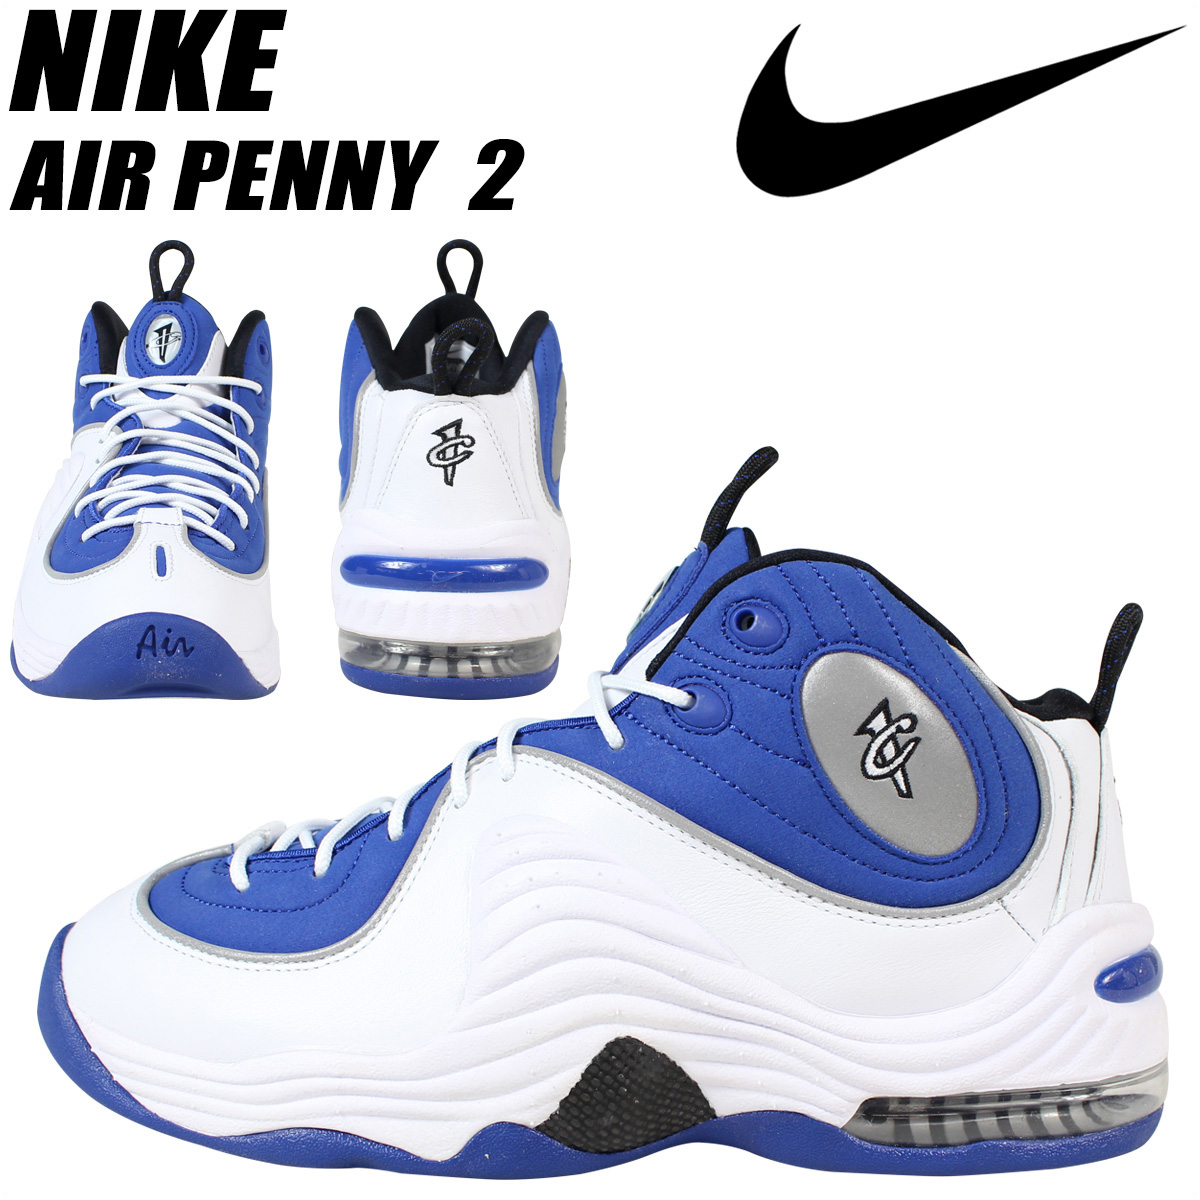 9f403bb13c The origin of the name comes from the Greece myths of one Jeff Johnson saw  in the dream, victory goddess Nike (Nike).